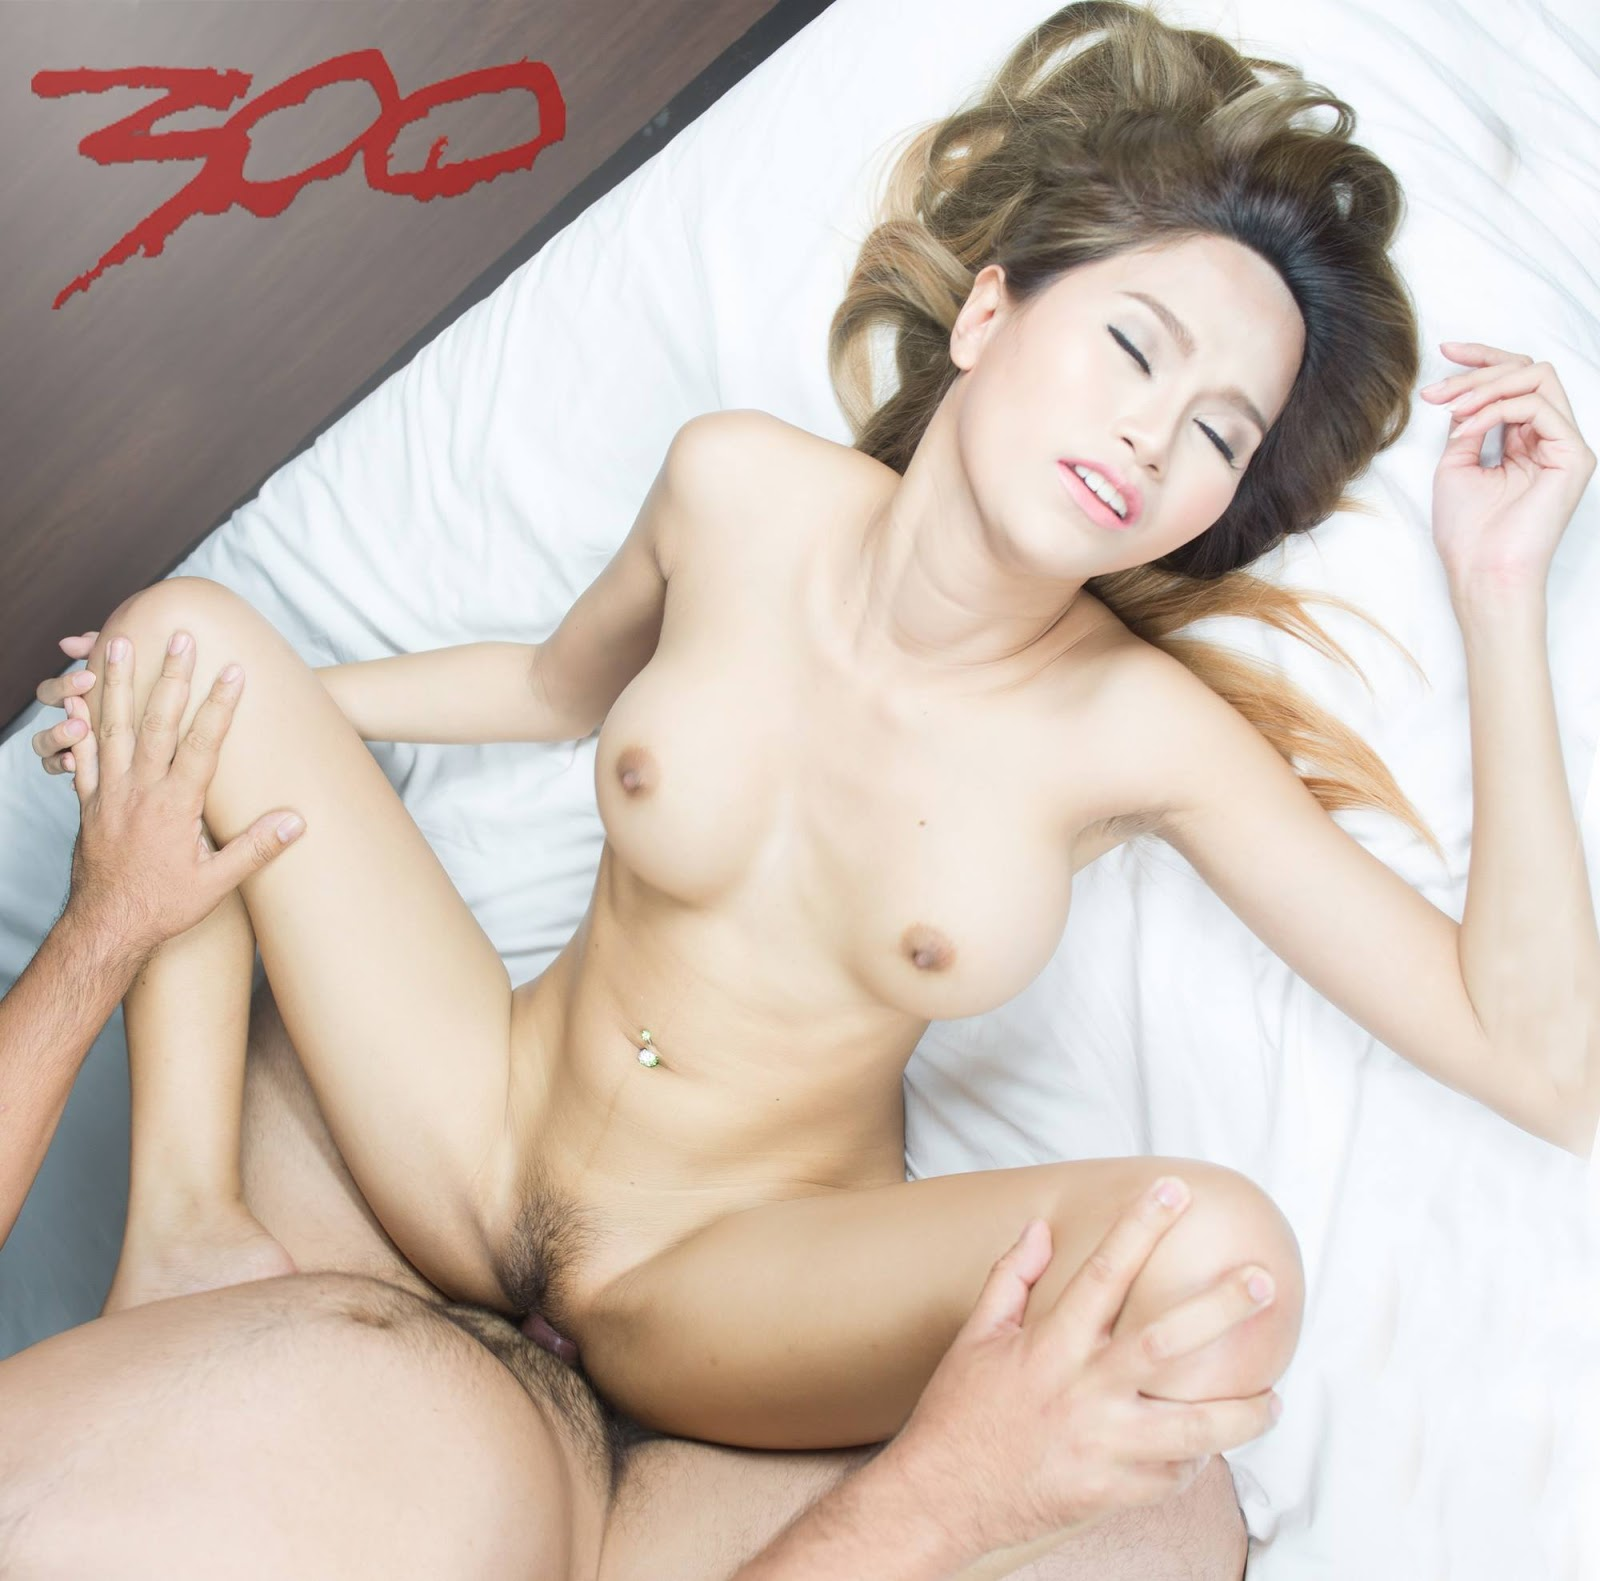 nude people at party